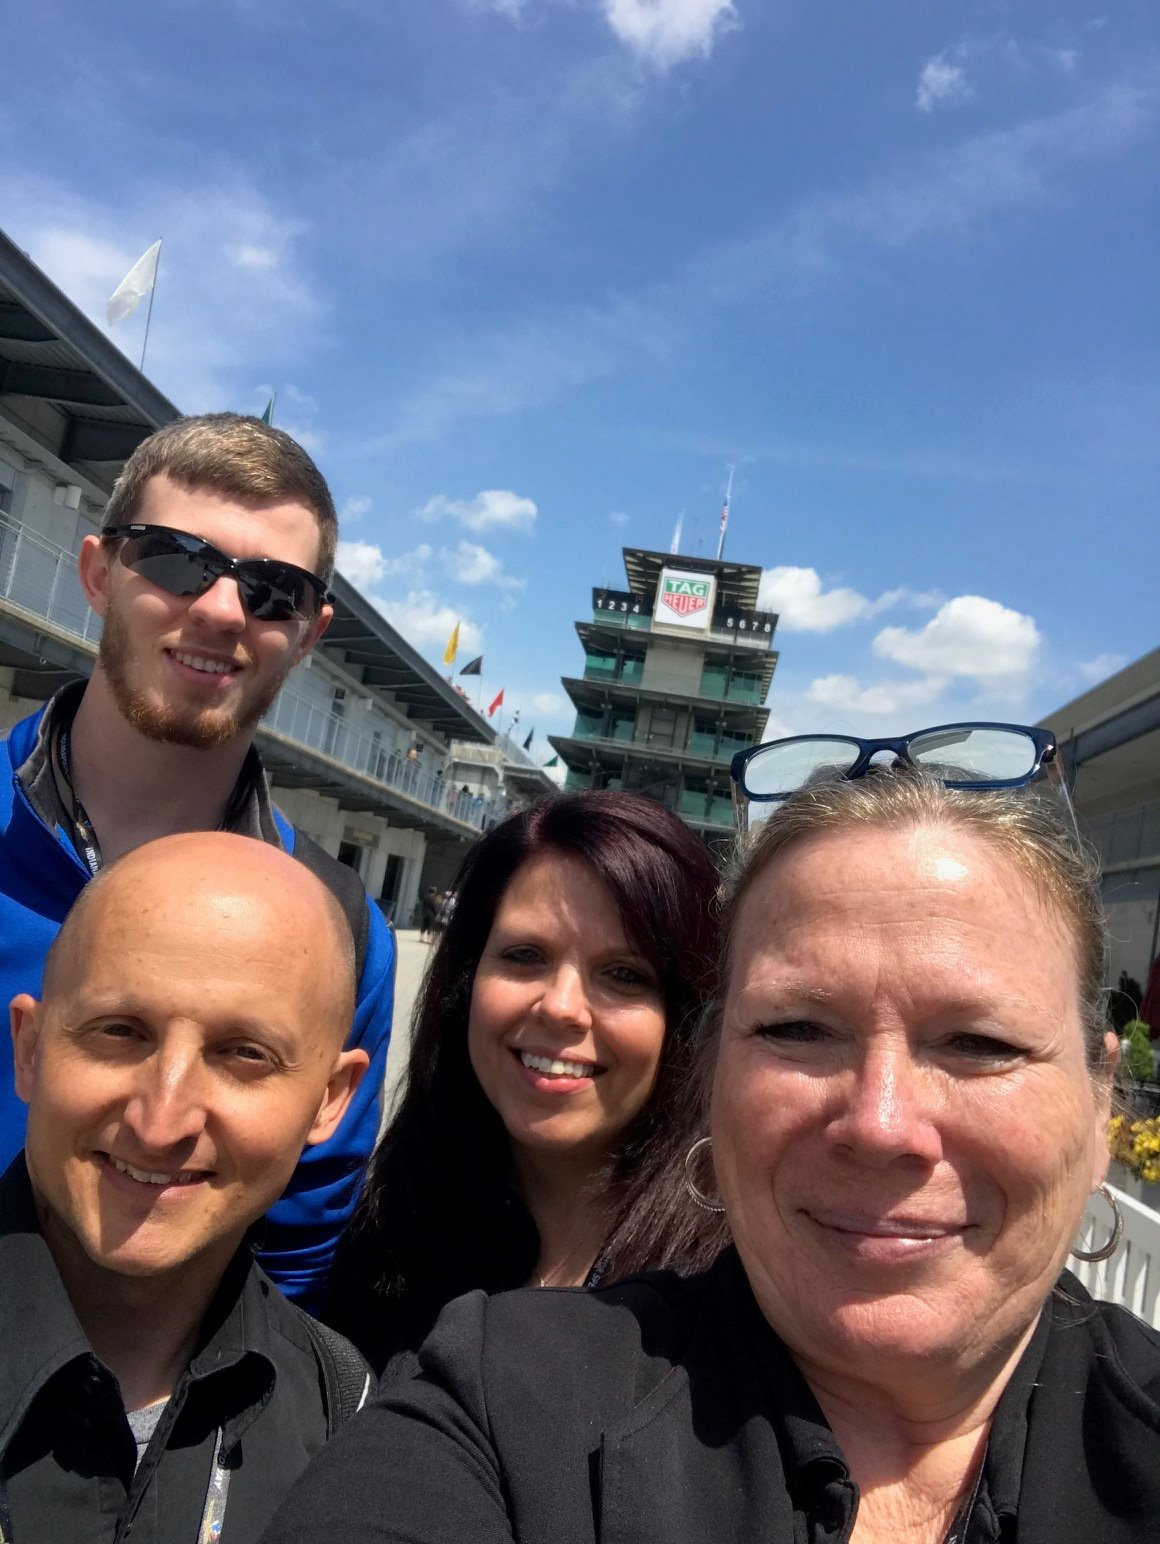 Hoosier Energy team enjoying Practice Day at the Indianapolis Motor Speedway after the Indiana GPUG Meeting